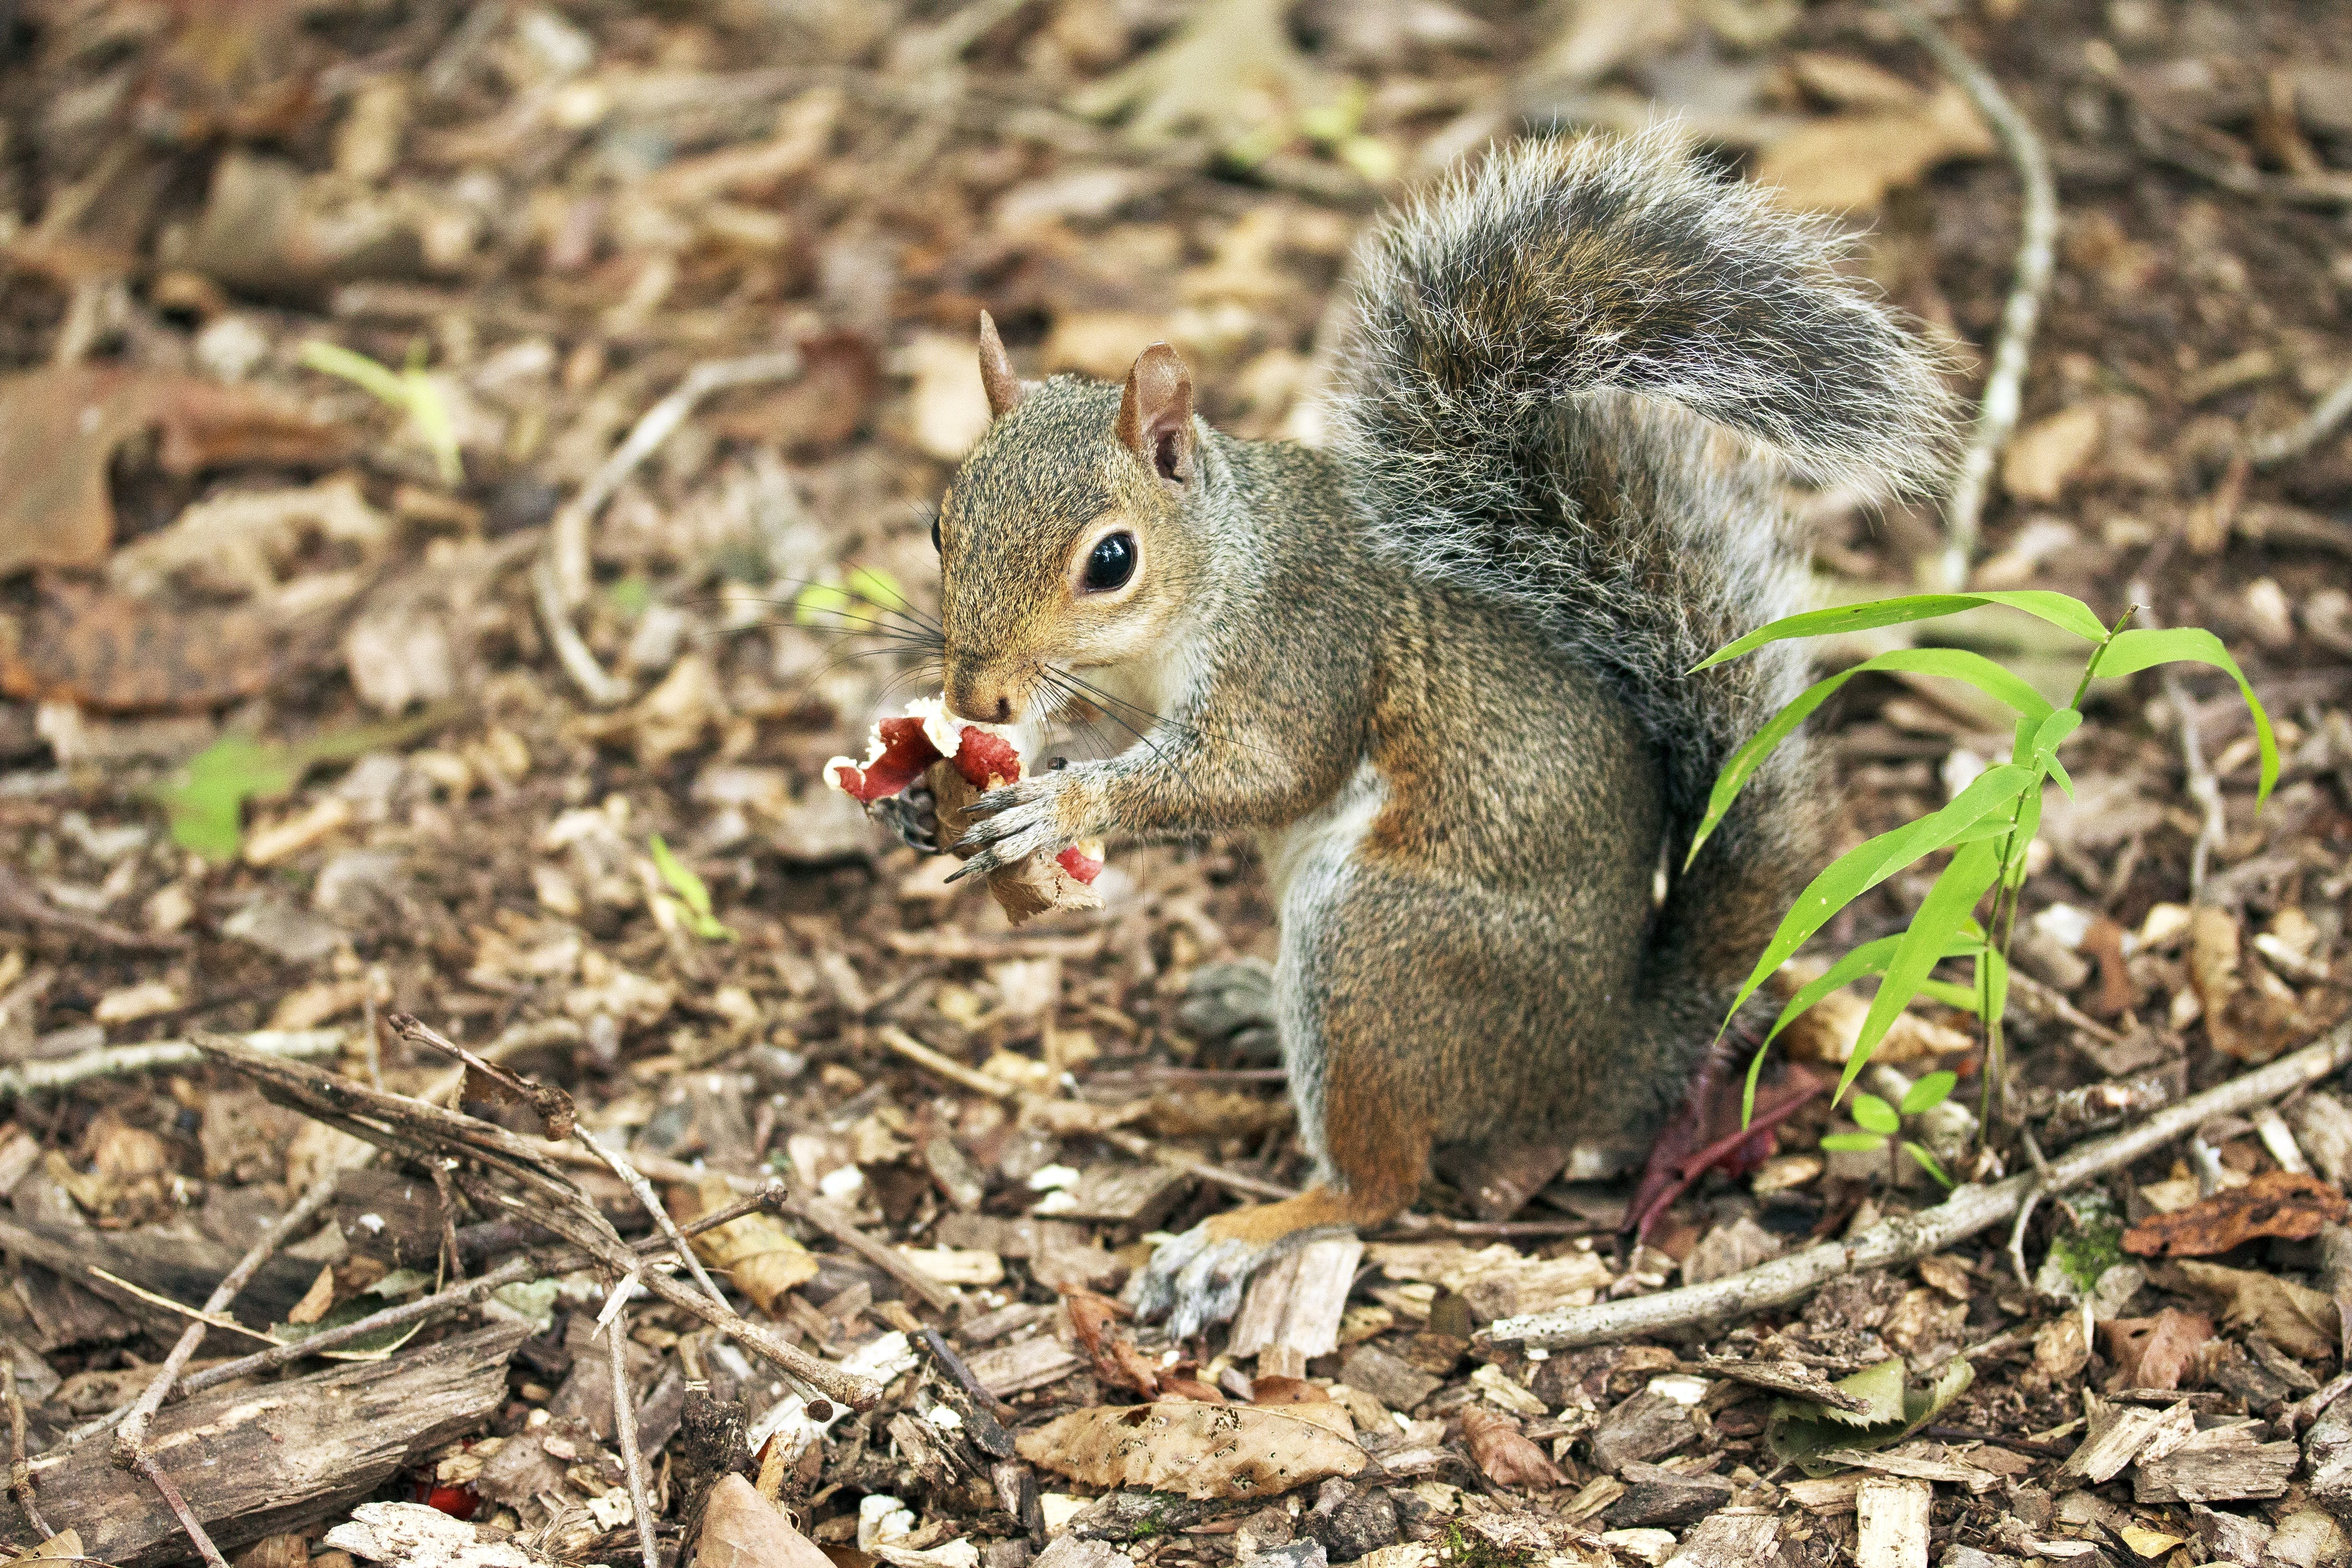 Gray Squirrel Eating Red Fruit